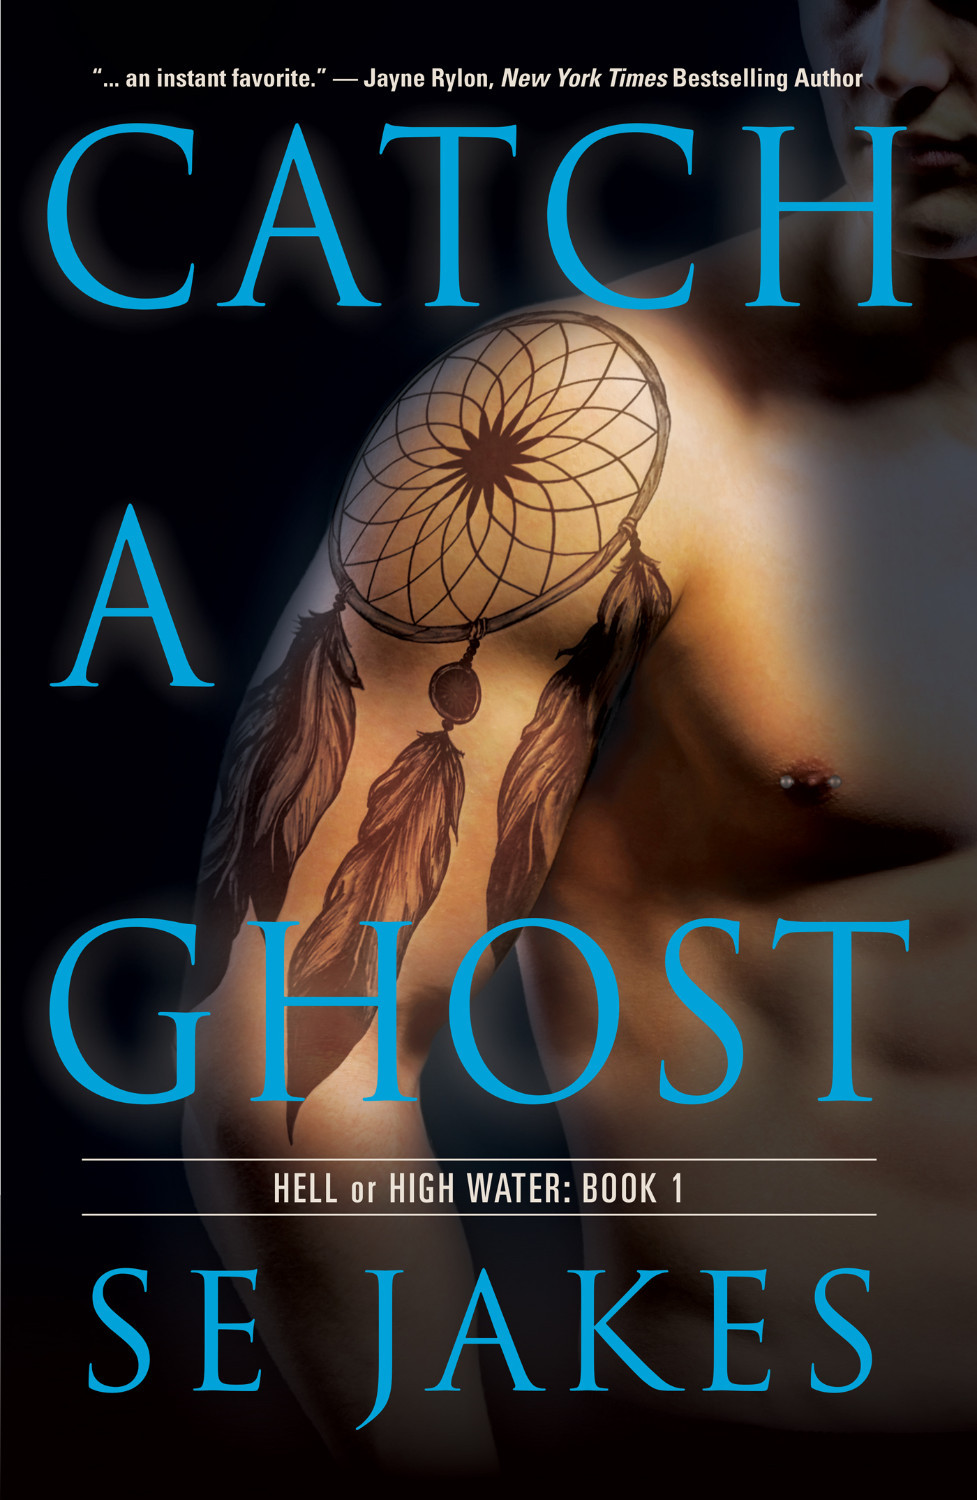 CatchAGhost_Cover_Final_withbleed_539-97.jpg